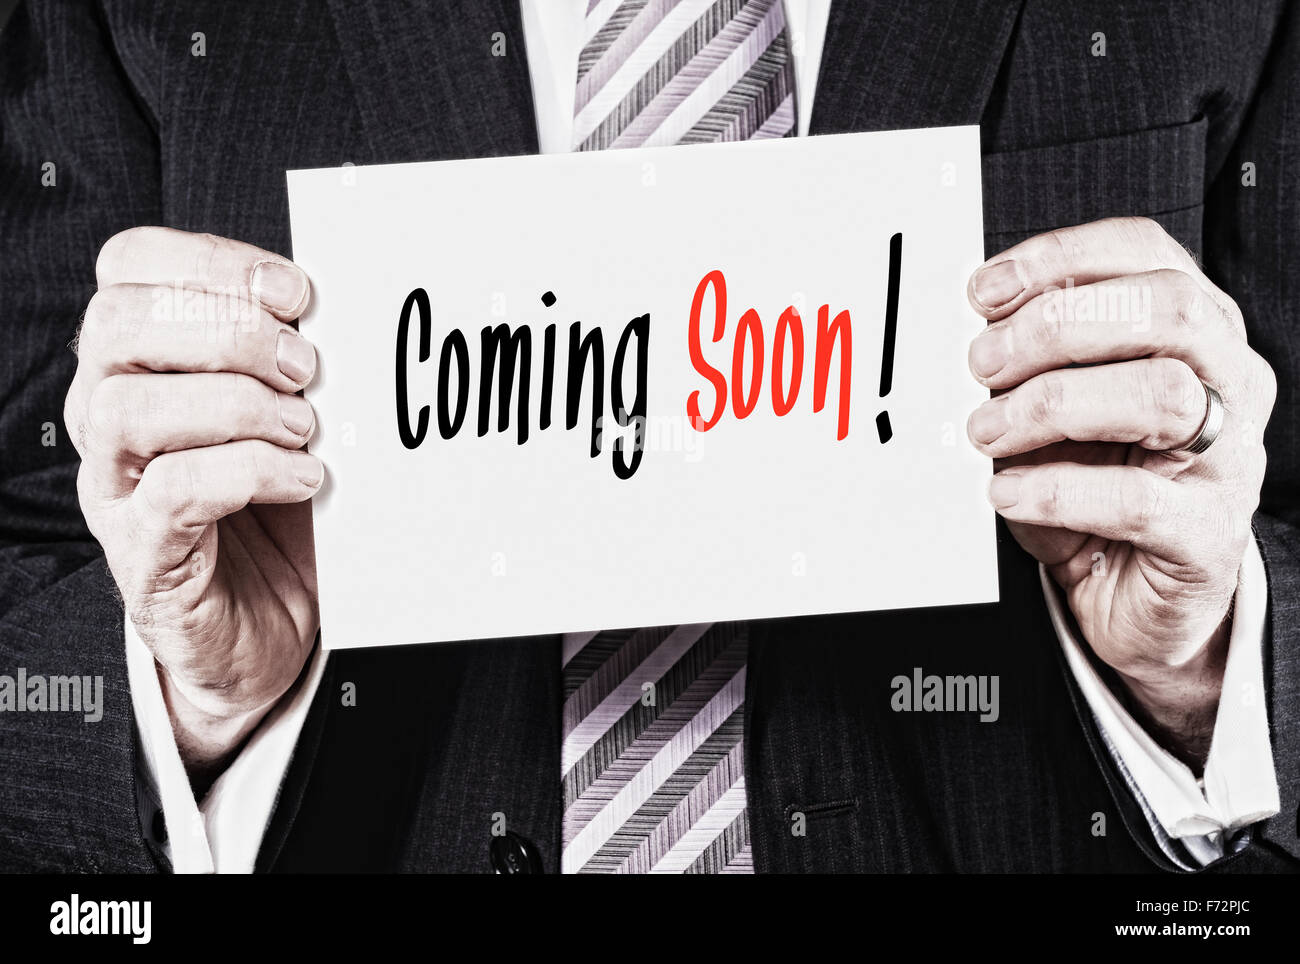 Coming Soon, Induction Training headlines concept. - Stock Image